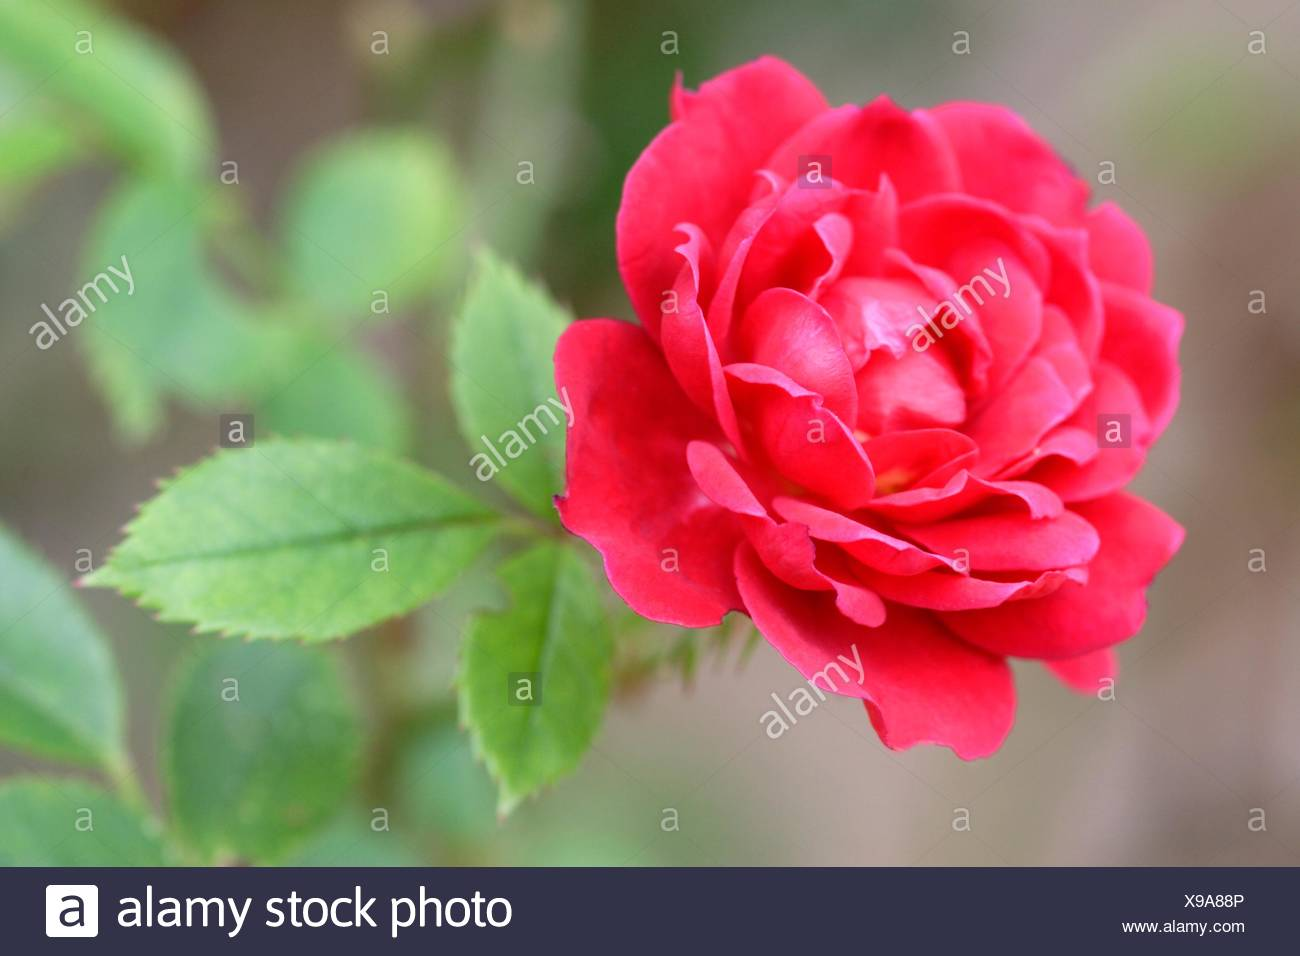 Ruby Rose Stock Photos Amp Ruby Rose Stock Images Alamy